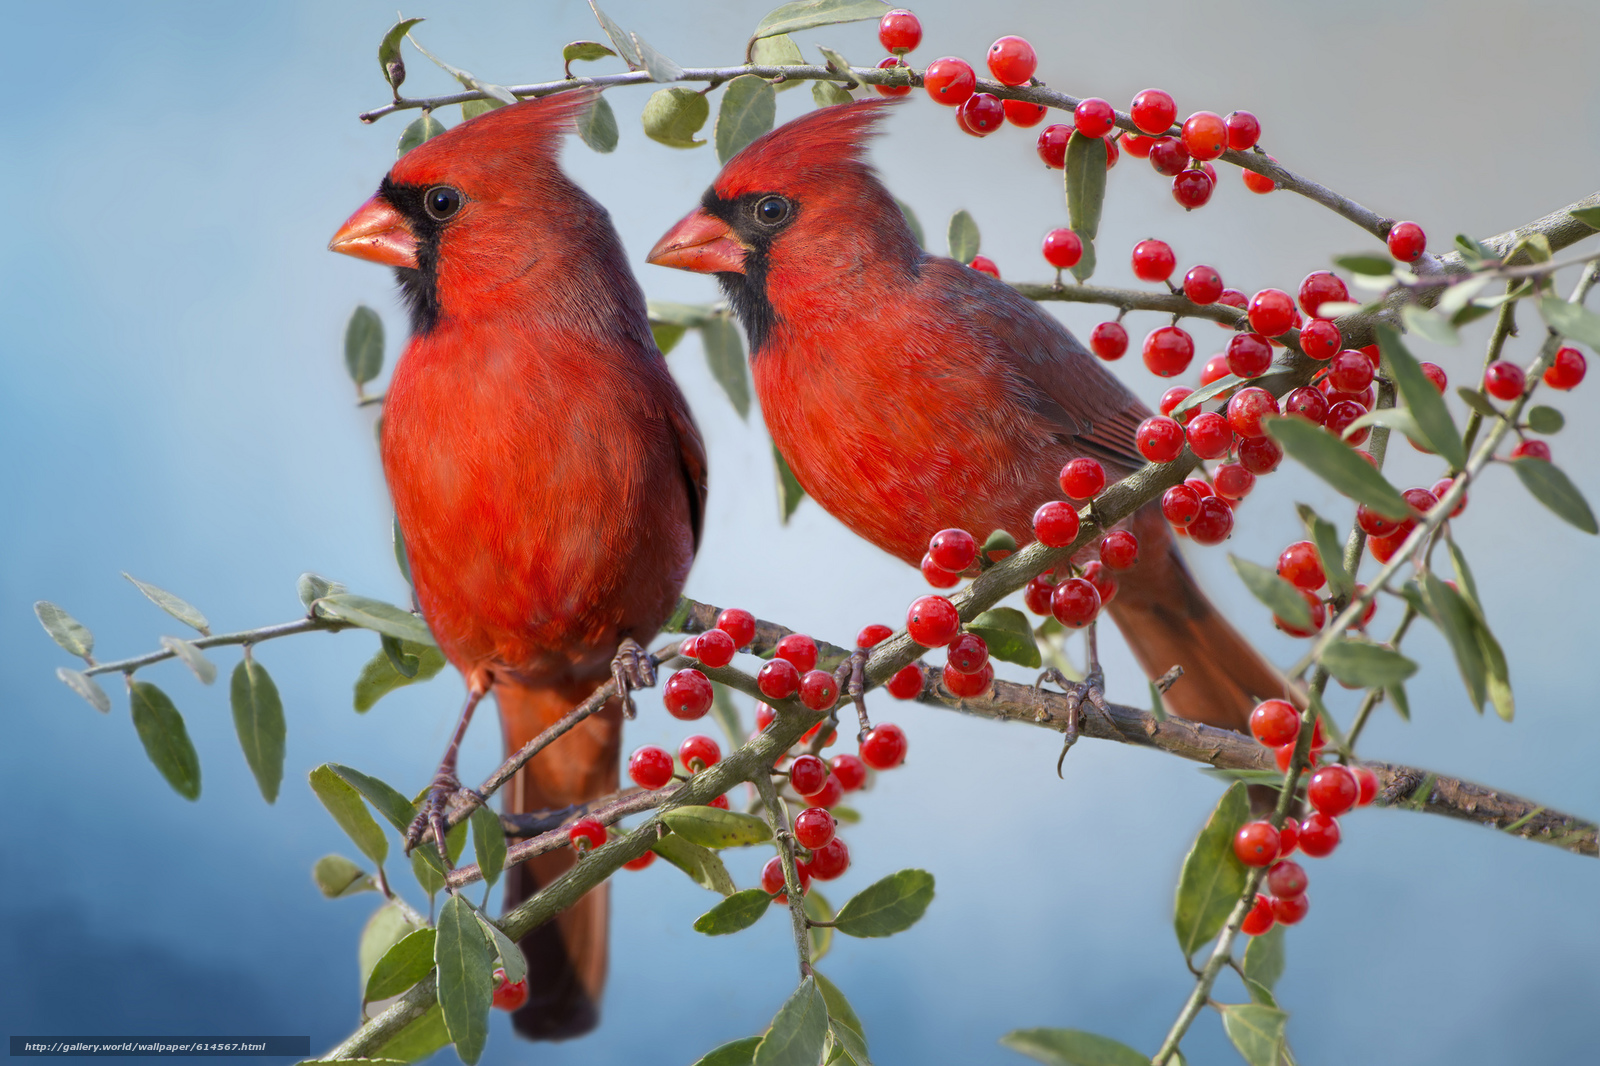 Download wallpaper Red Cardinal Cardinals birds couple 1600x1066